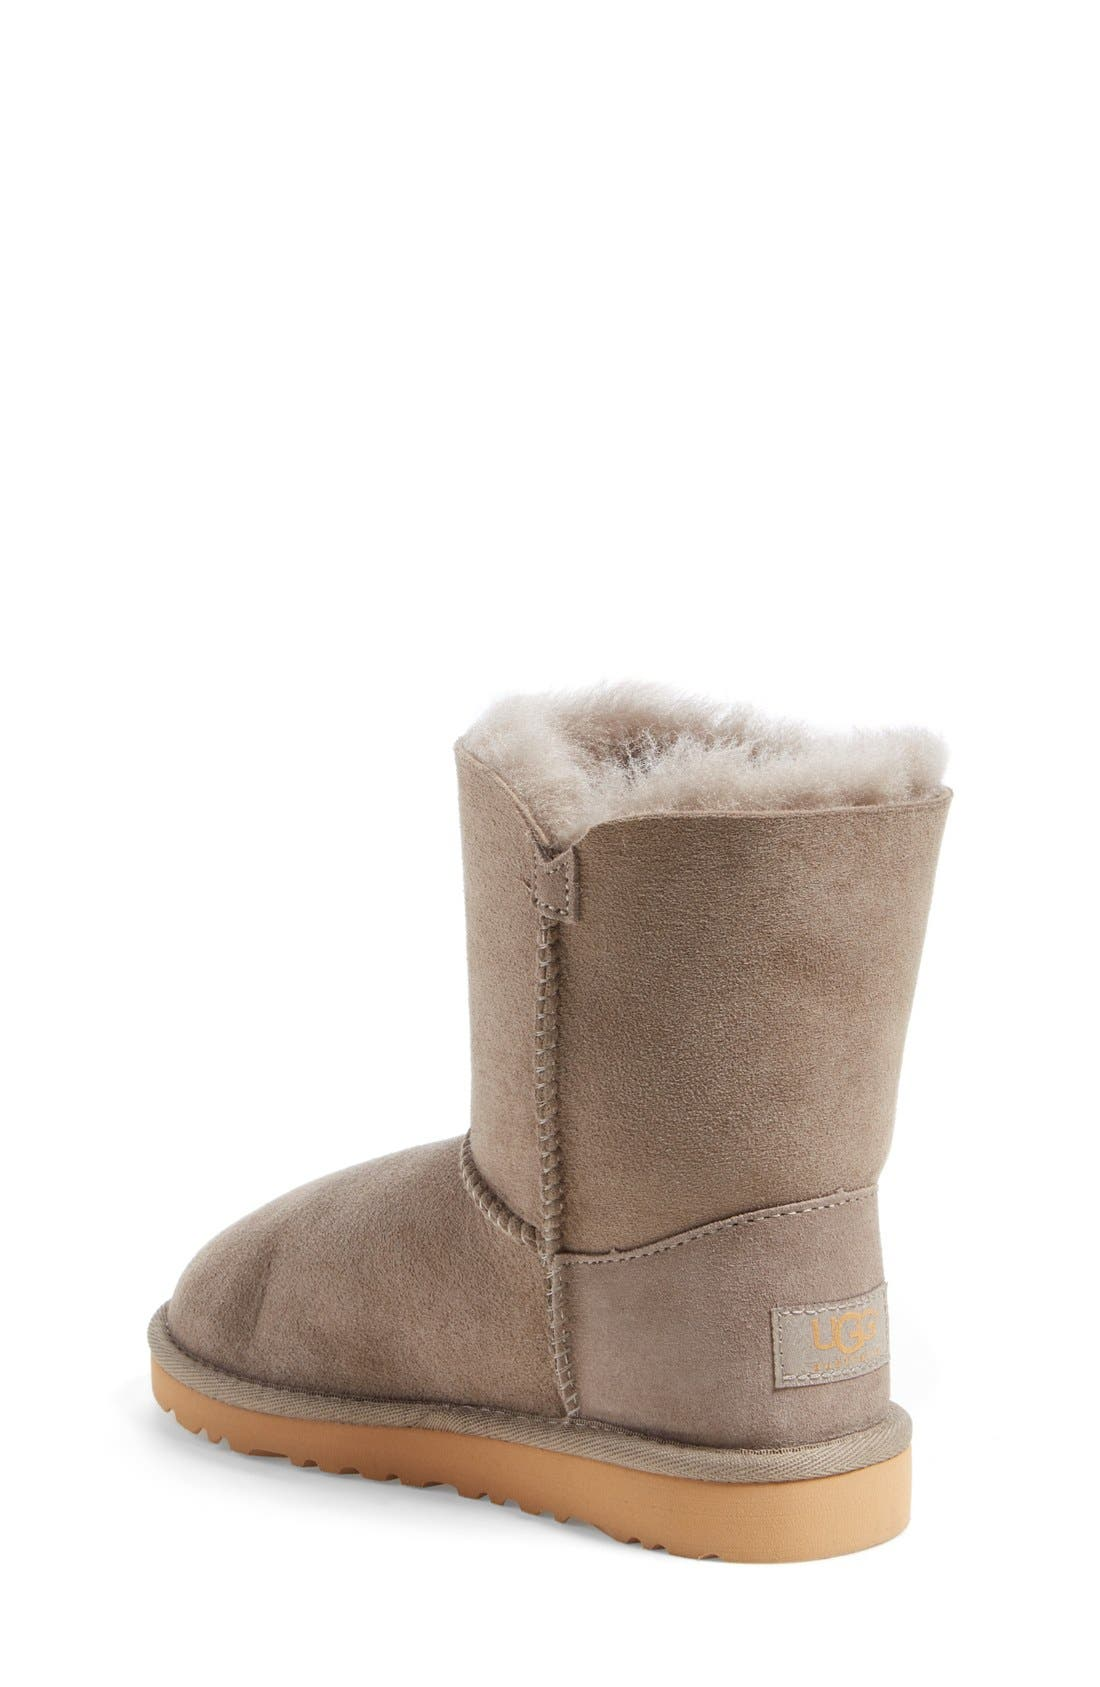 Alternate Image 2  - UGG® 'Bailey Button' Boot (Walker, Toddler, Little Kid & Big Kid)